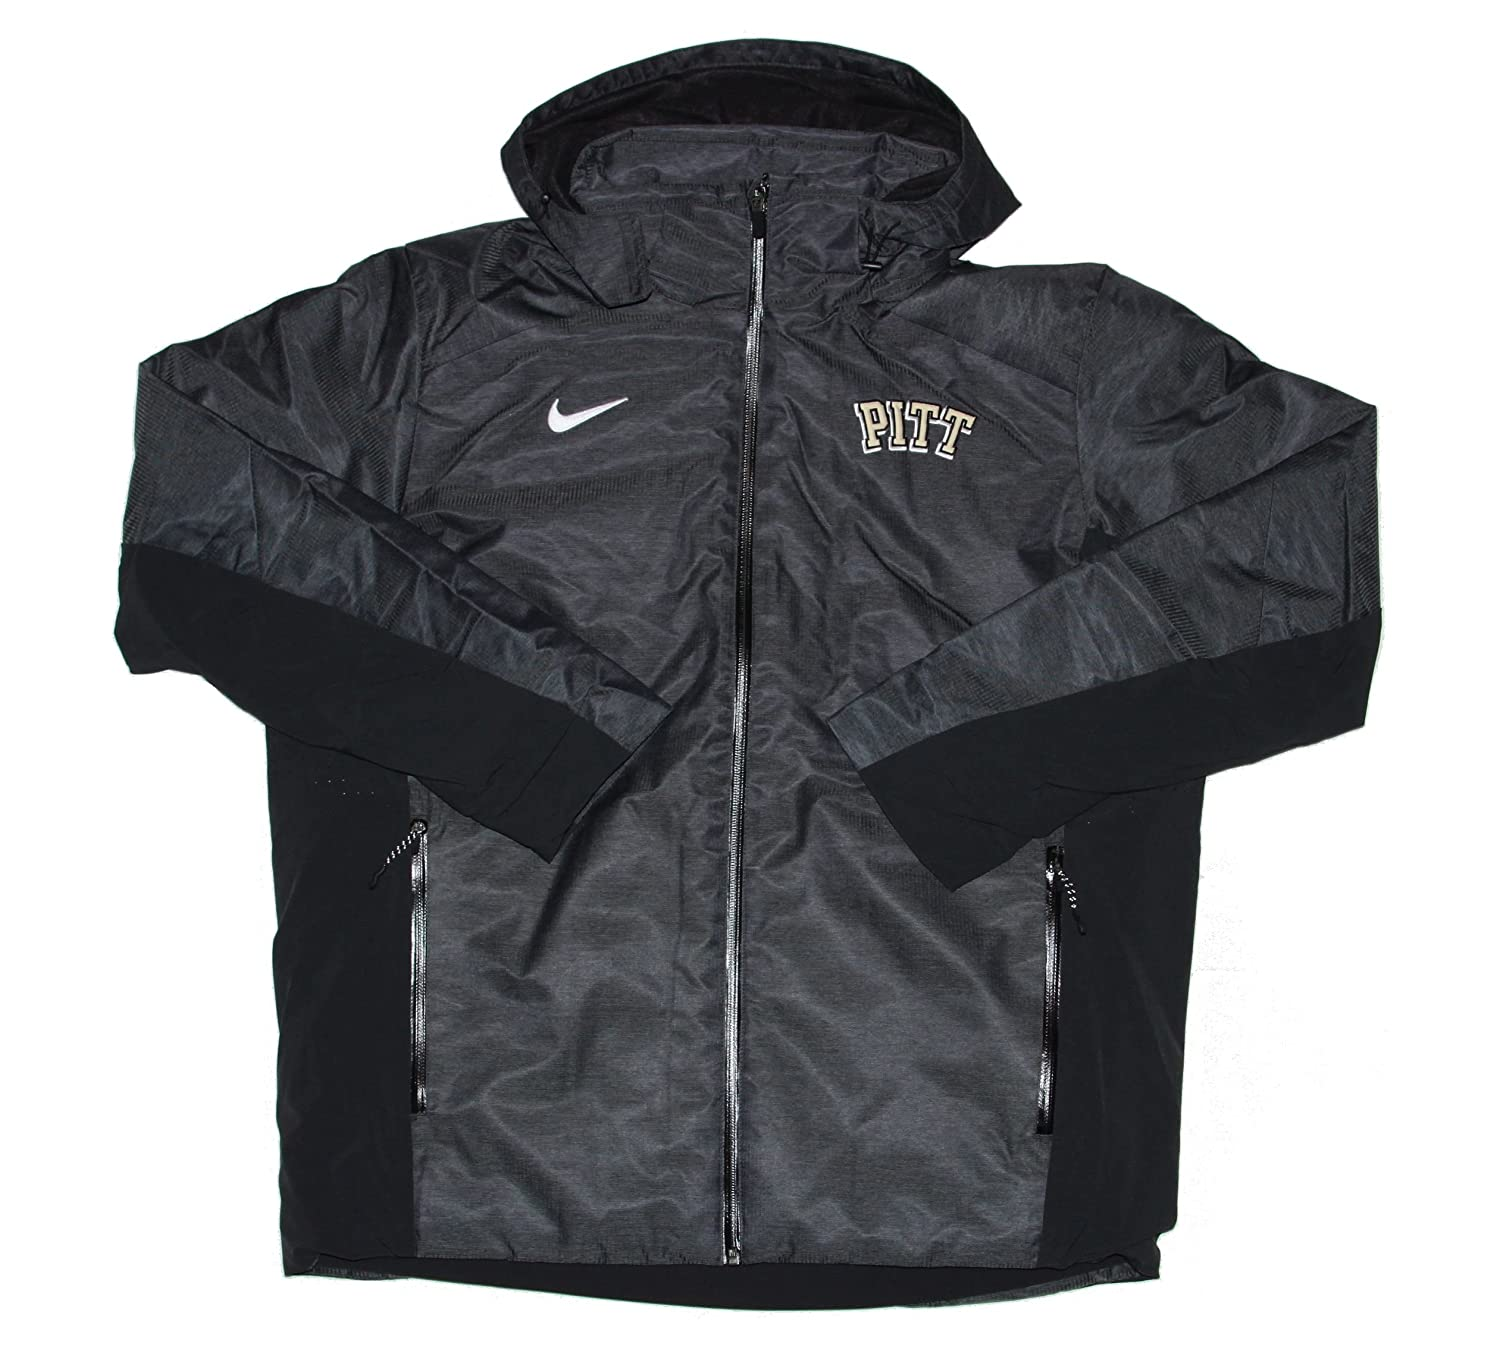 3551aa152ff2 Amazon.com  Nike Men s Pittsburgh Panthers Heavy Winter Jacket Coat Sz XL  Black  Clothing